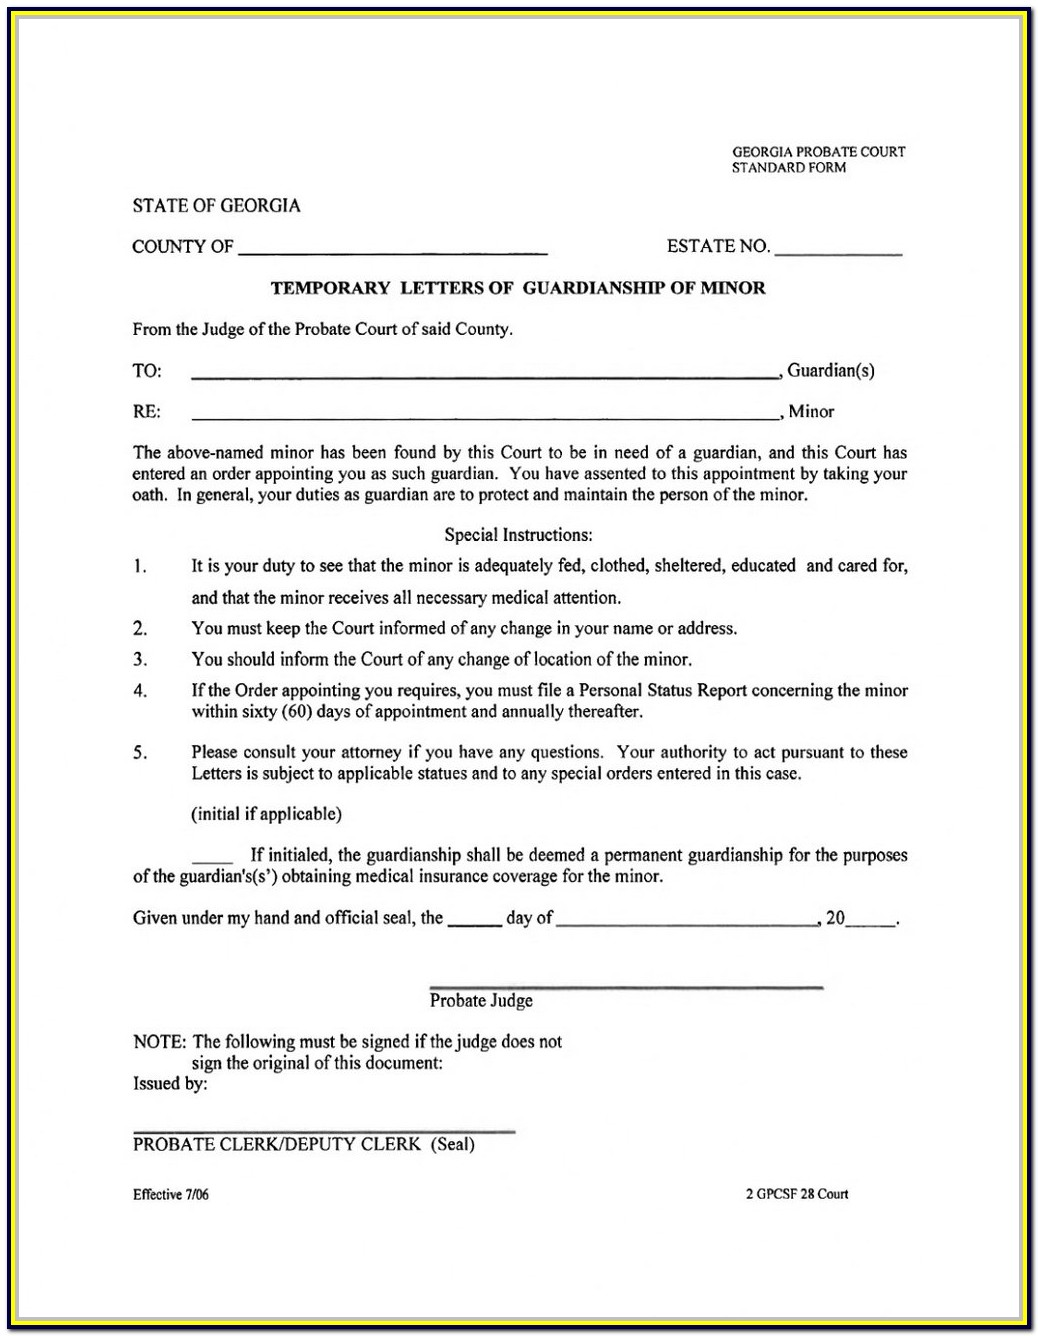 Florida Probate Forms Online